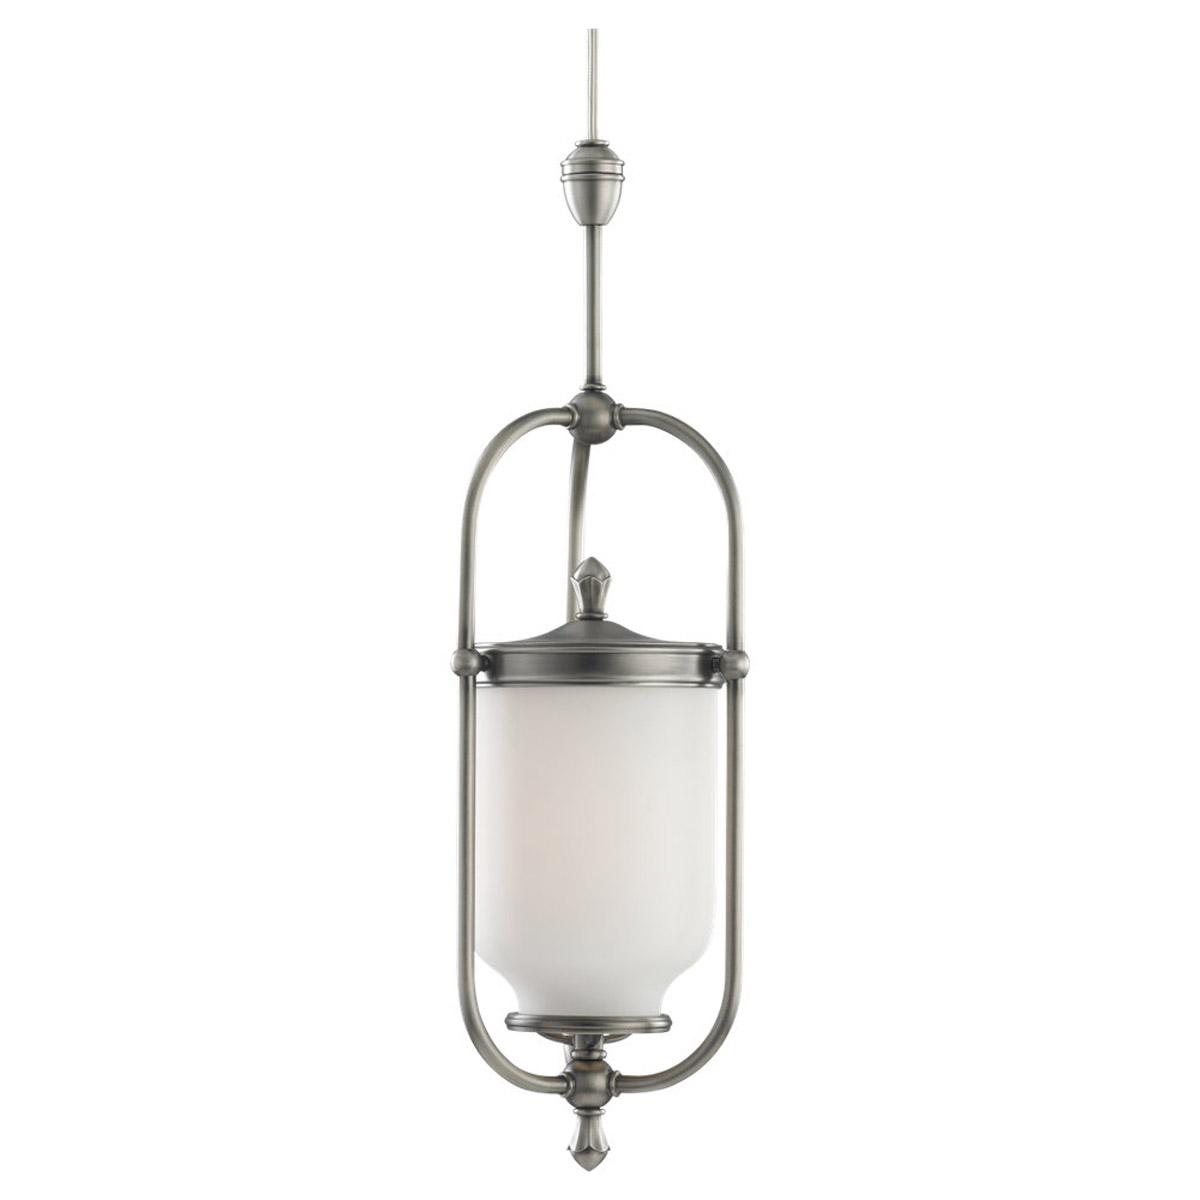 Sea Gull Lighting Wallace 1 + 1 Light Rail / Ceiling Pendant in Antique Brushed Nickel 94566-965